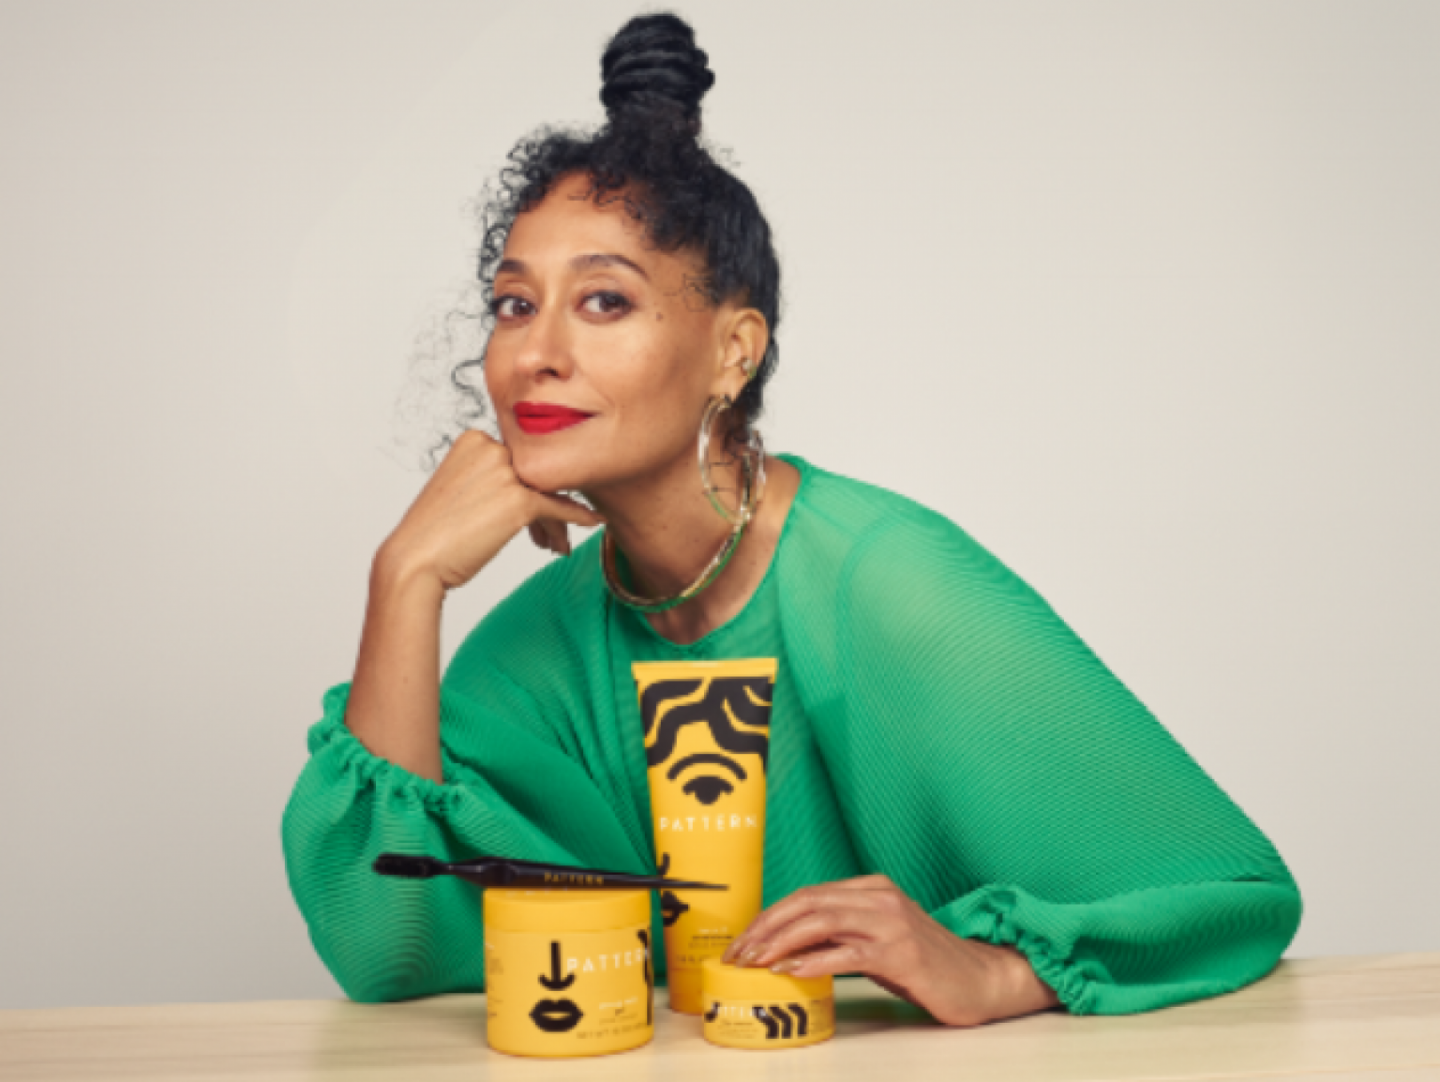 PODUCT: TRACEE ELLIS ROSS PATTERN GEL (STRONGHOLD)